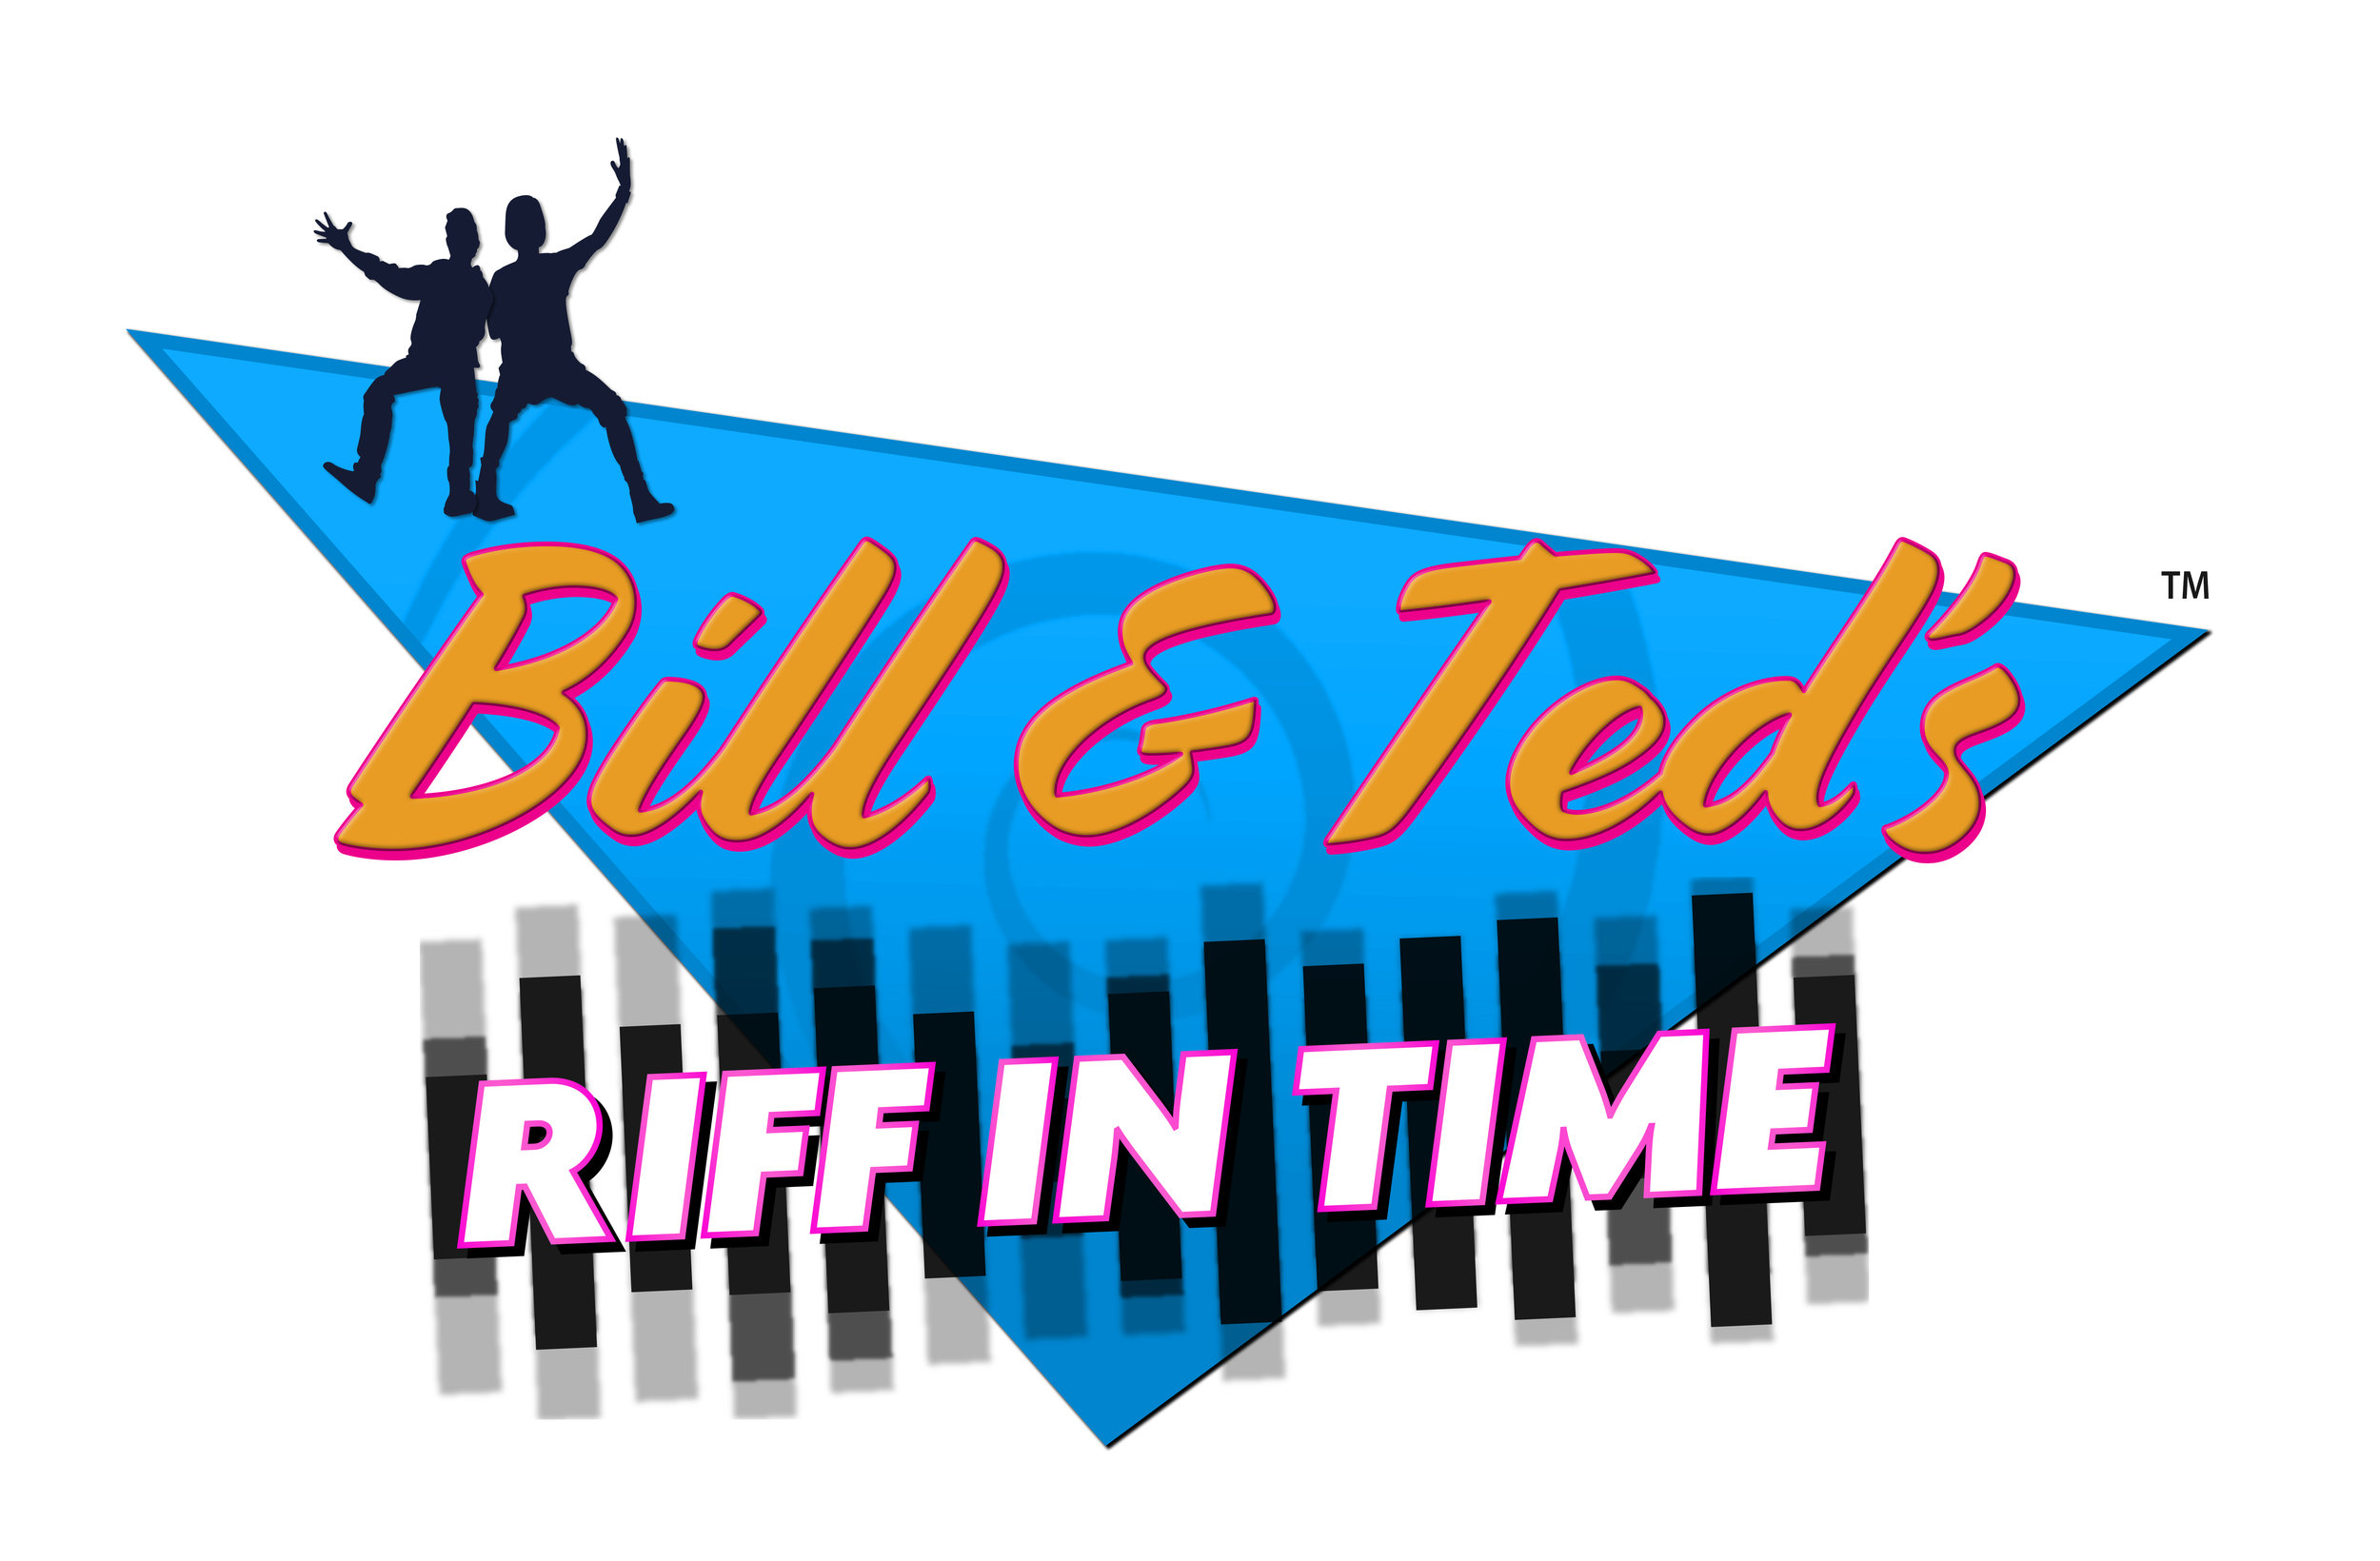 Bill and Ted's Riff in Time.